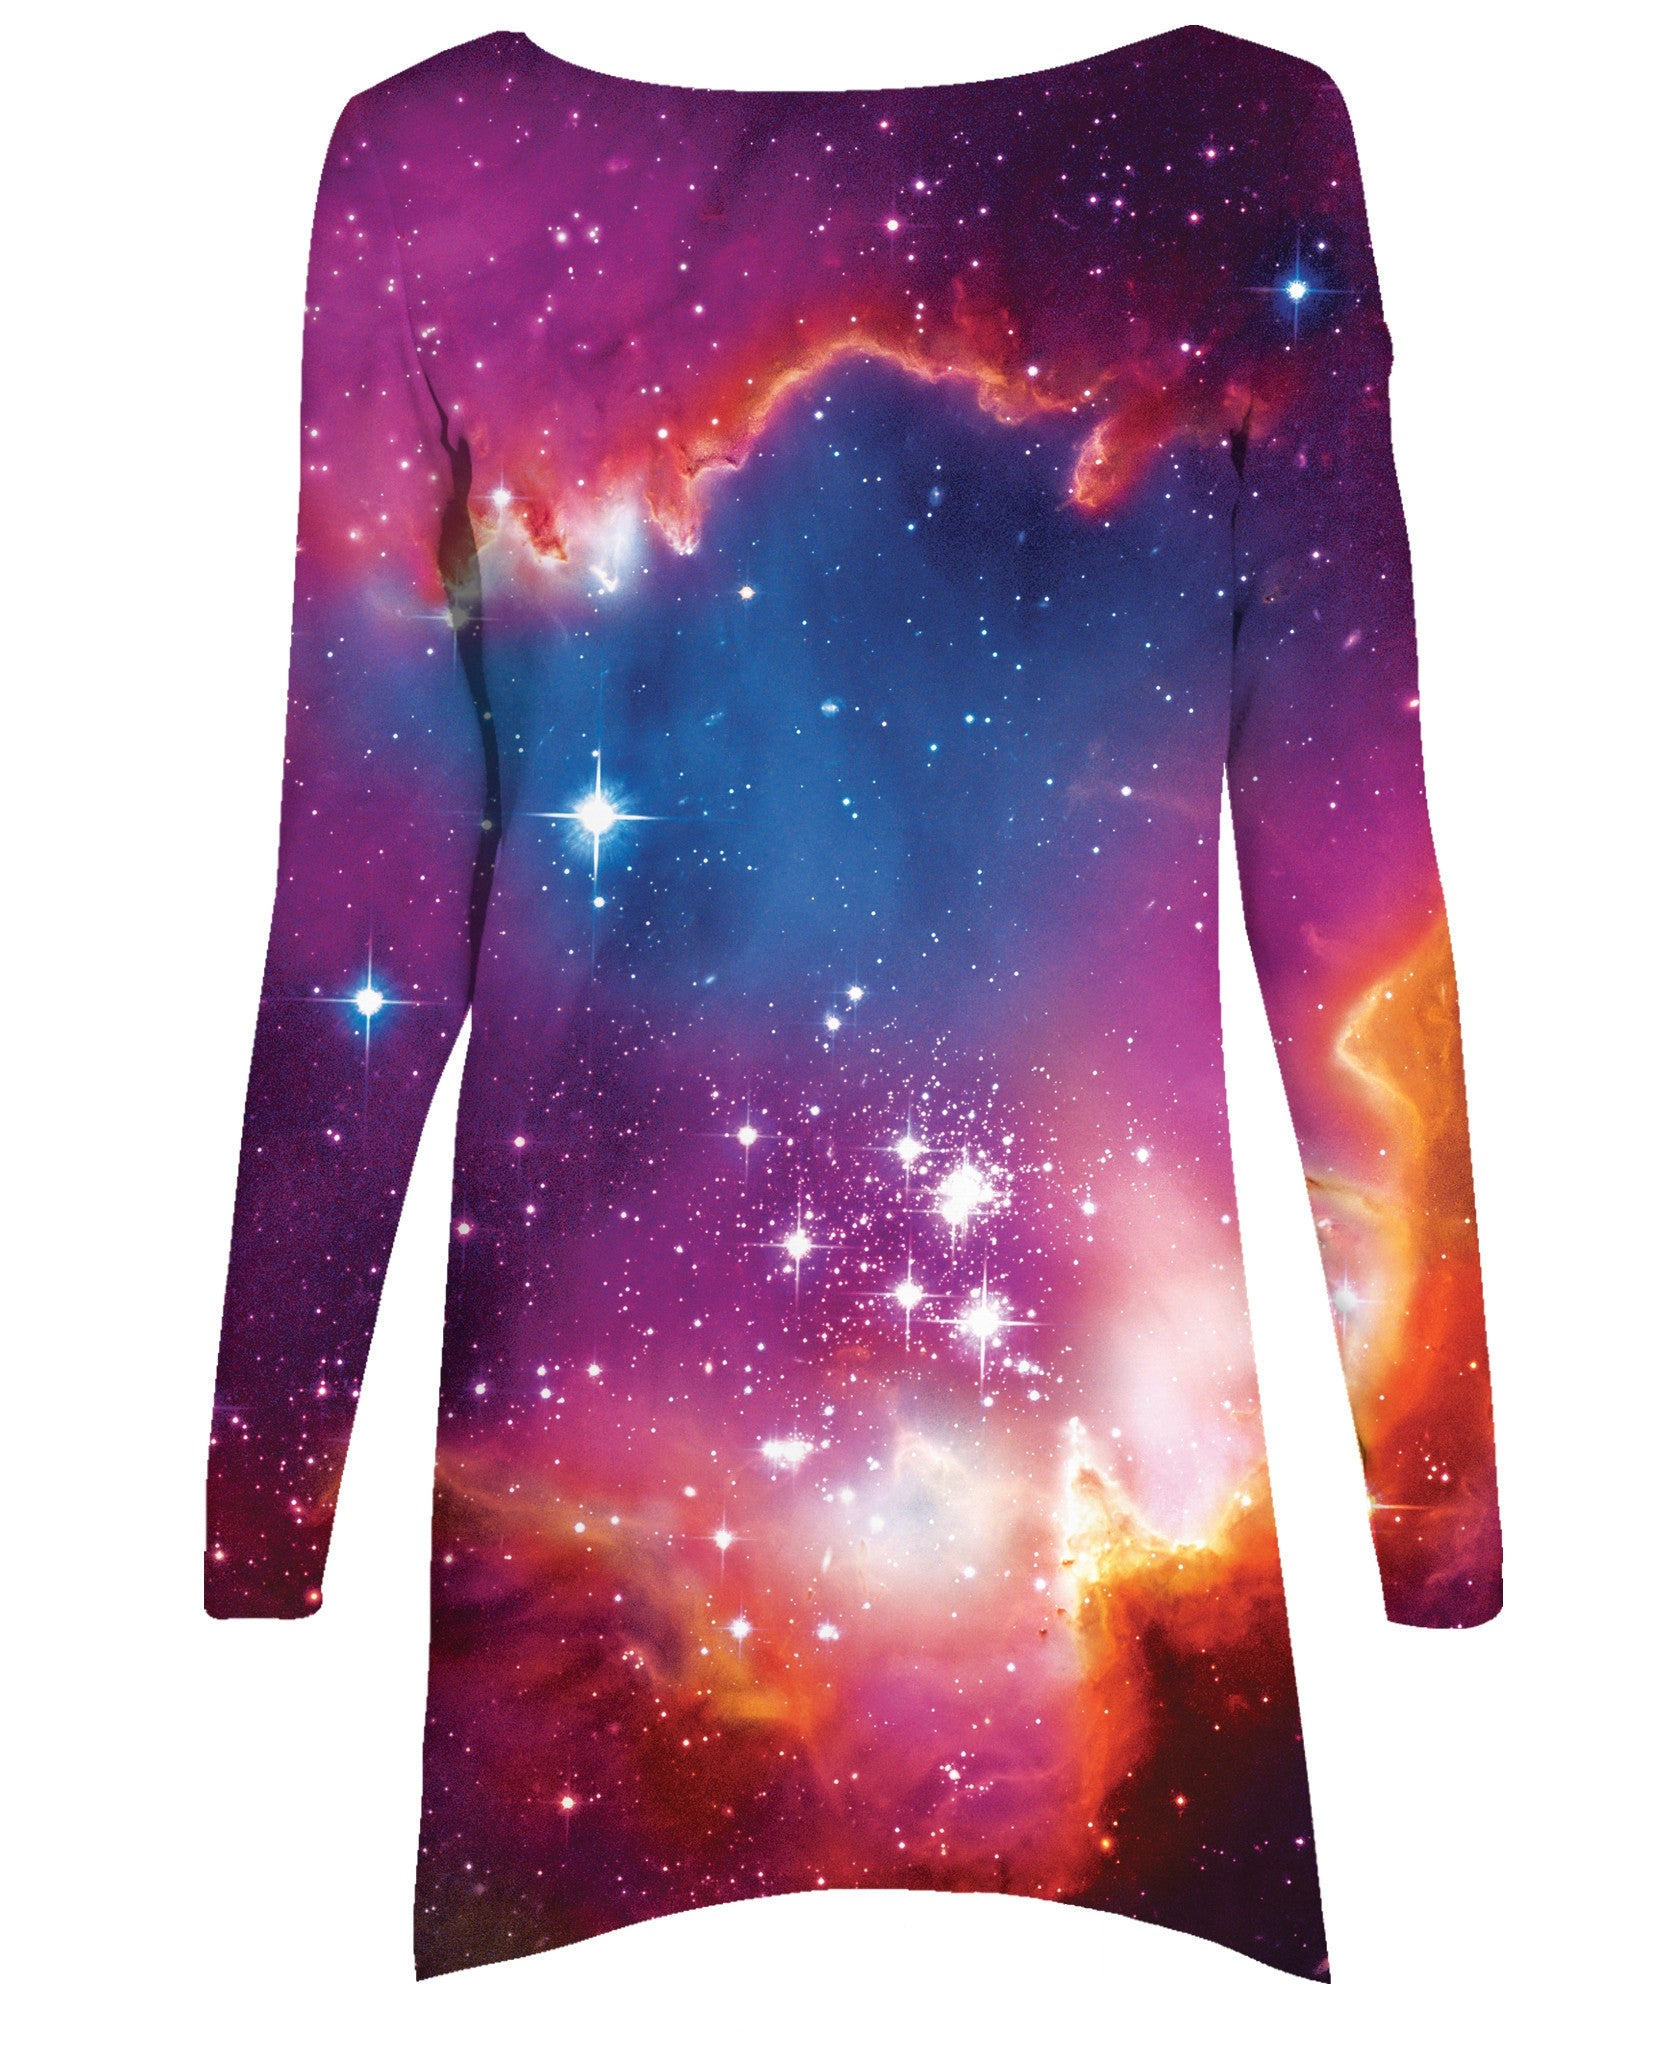 Cosmic Forces Long-Sleeve Dress - TShirtsRUS.co